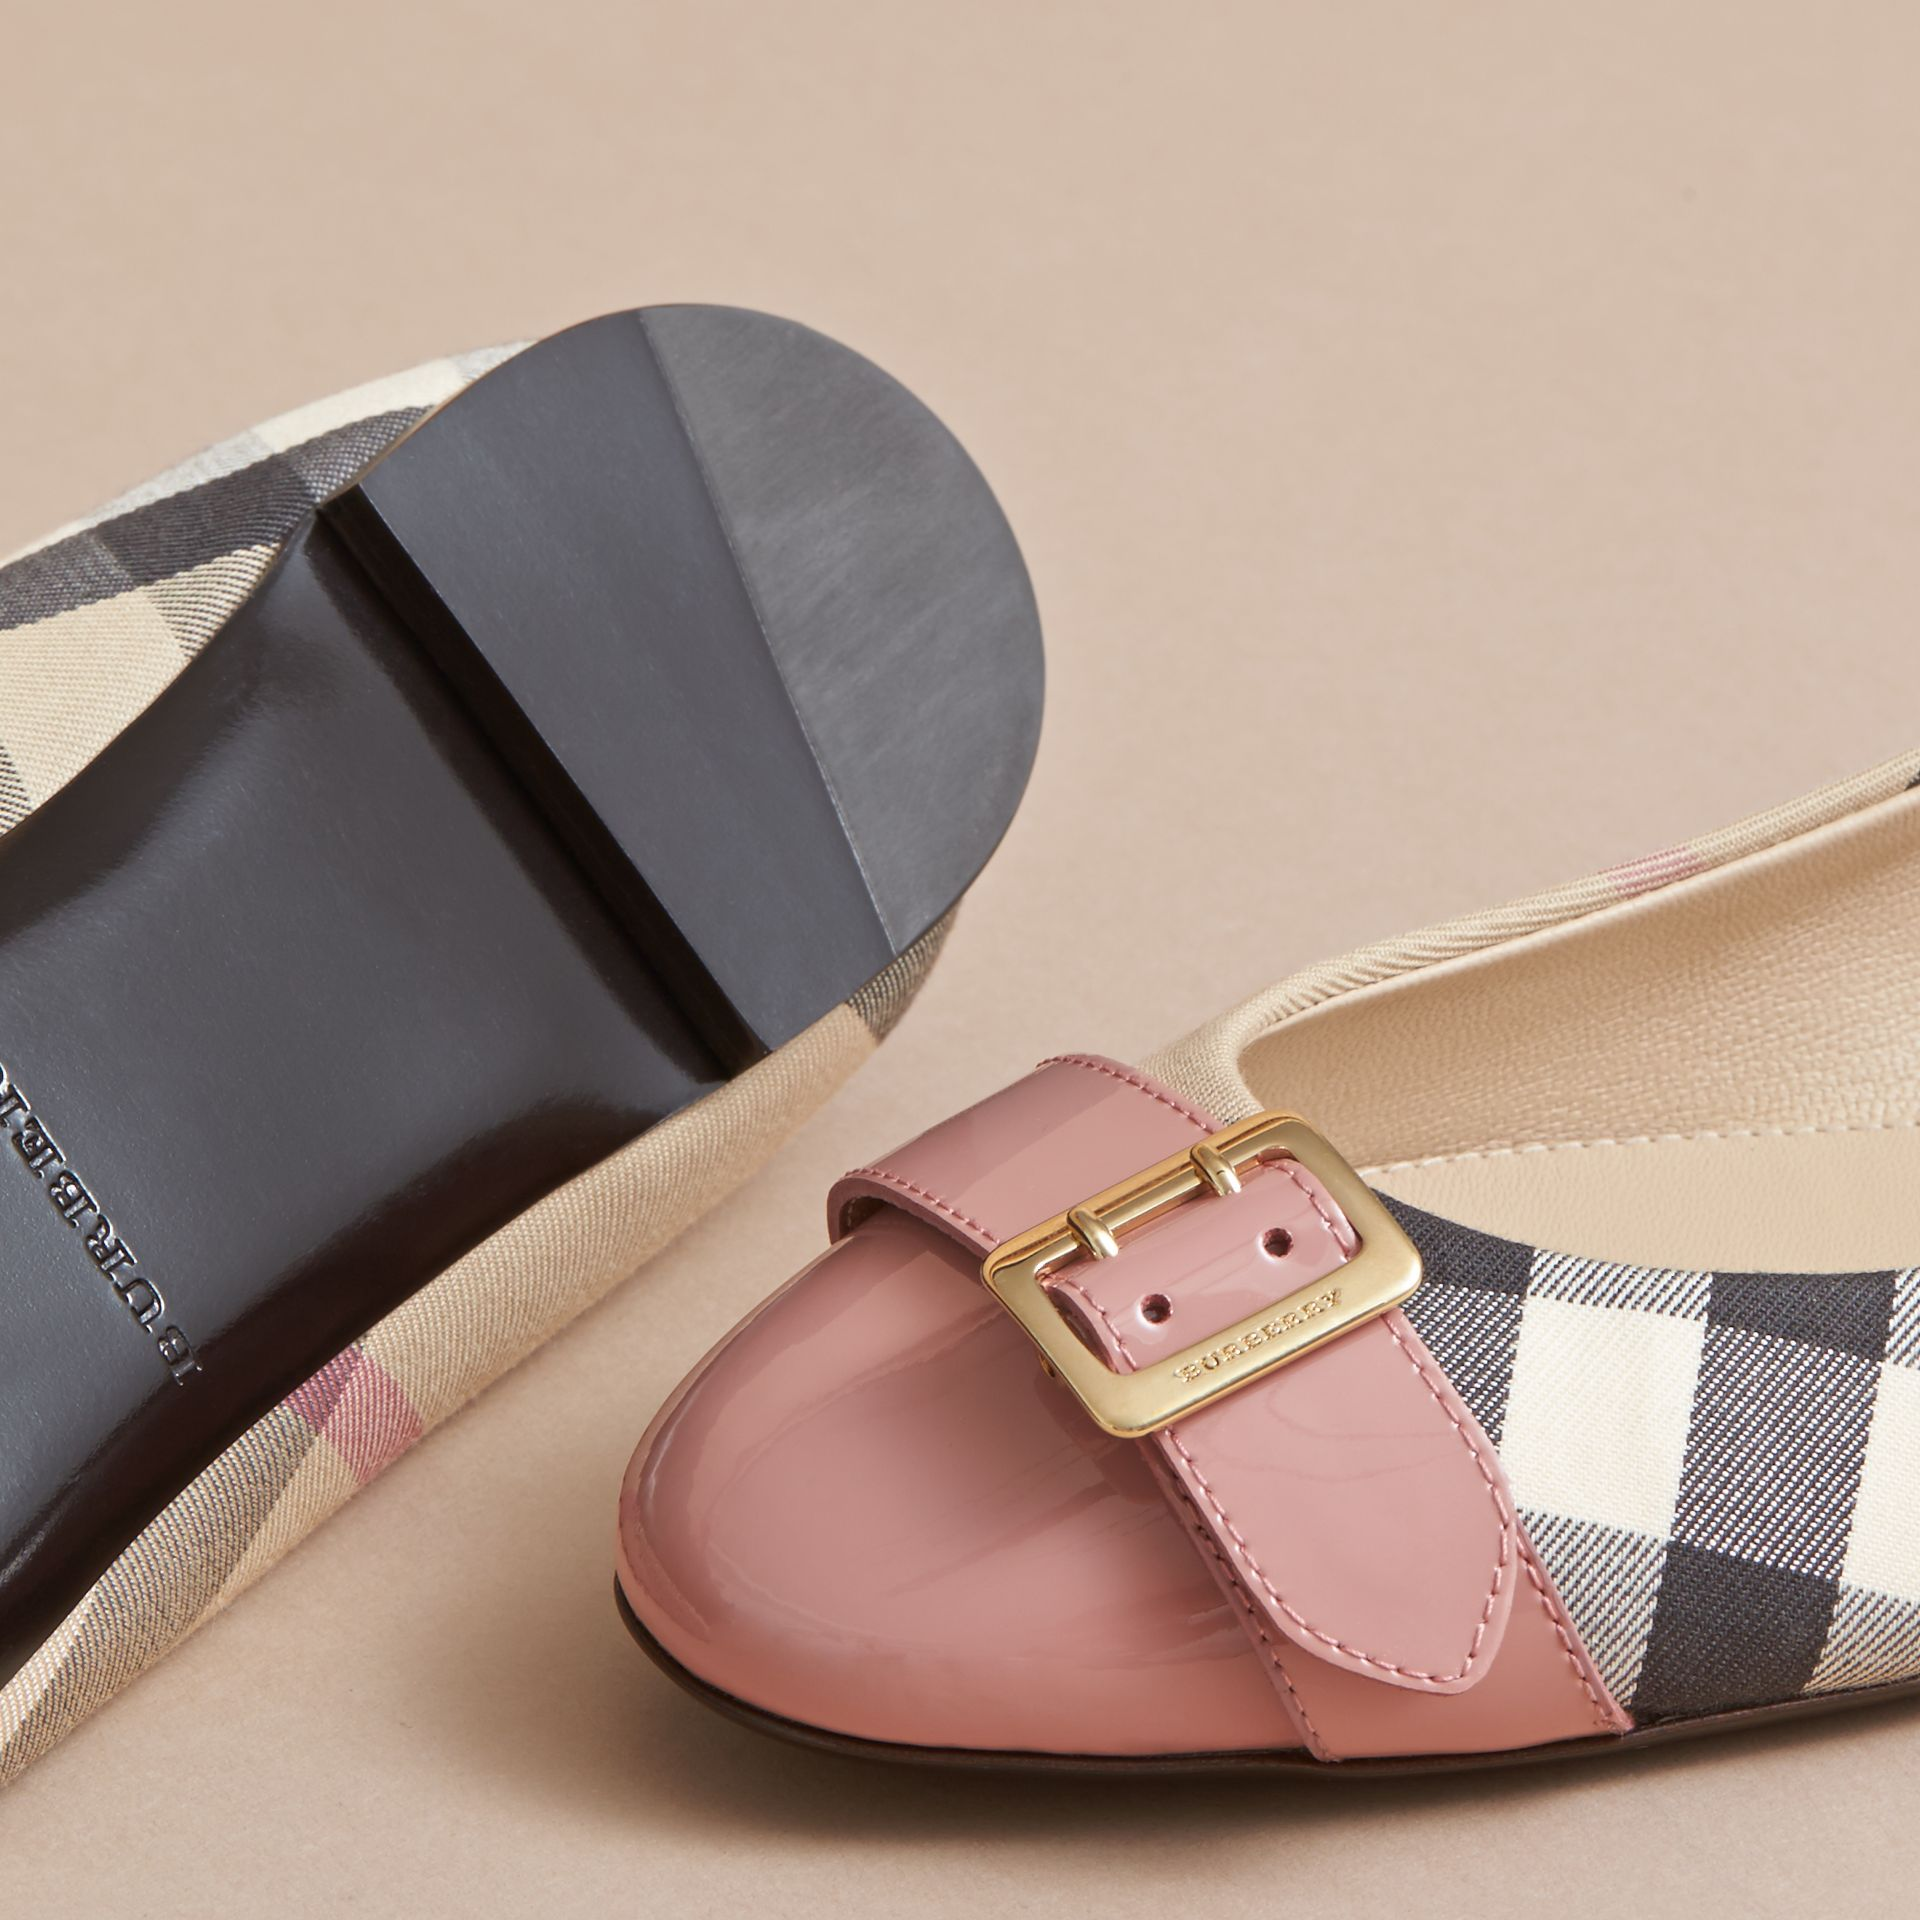 Buckle Detail Check and Patent Leather Ballerinas in Nude Pink - Women | Burberry - gallery image 5